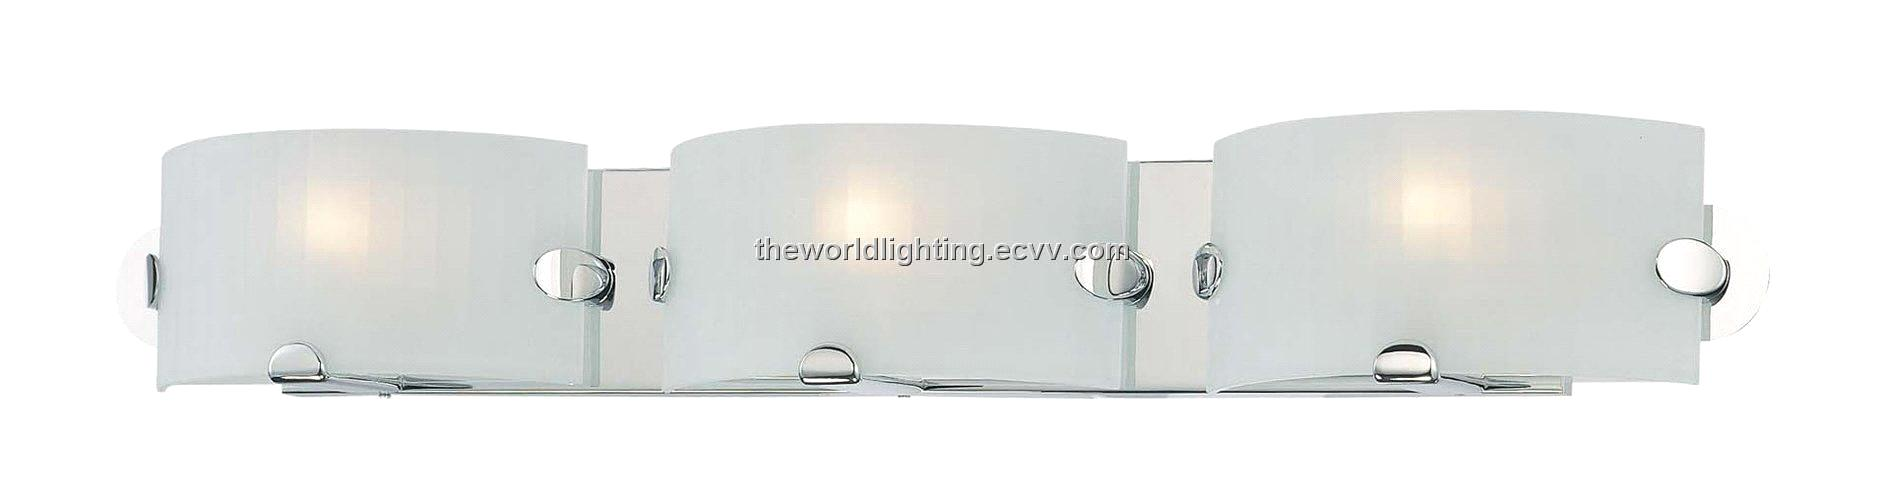 Modern Bathroom Vanity Light Fitures Contemporary For On Image